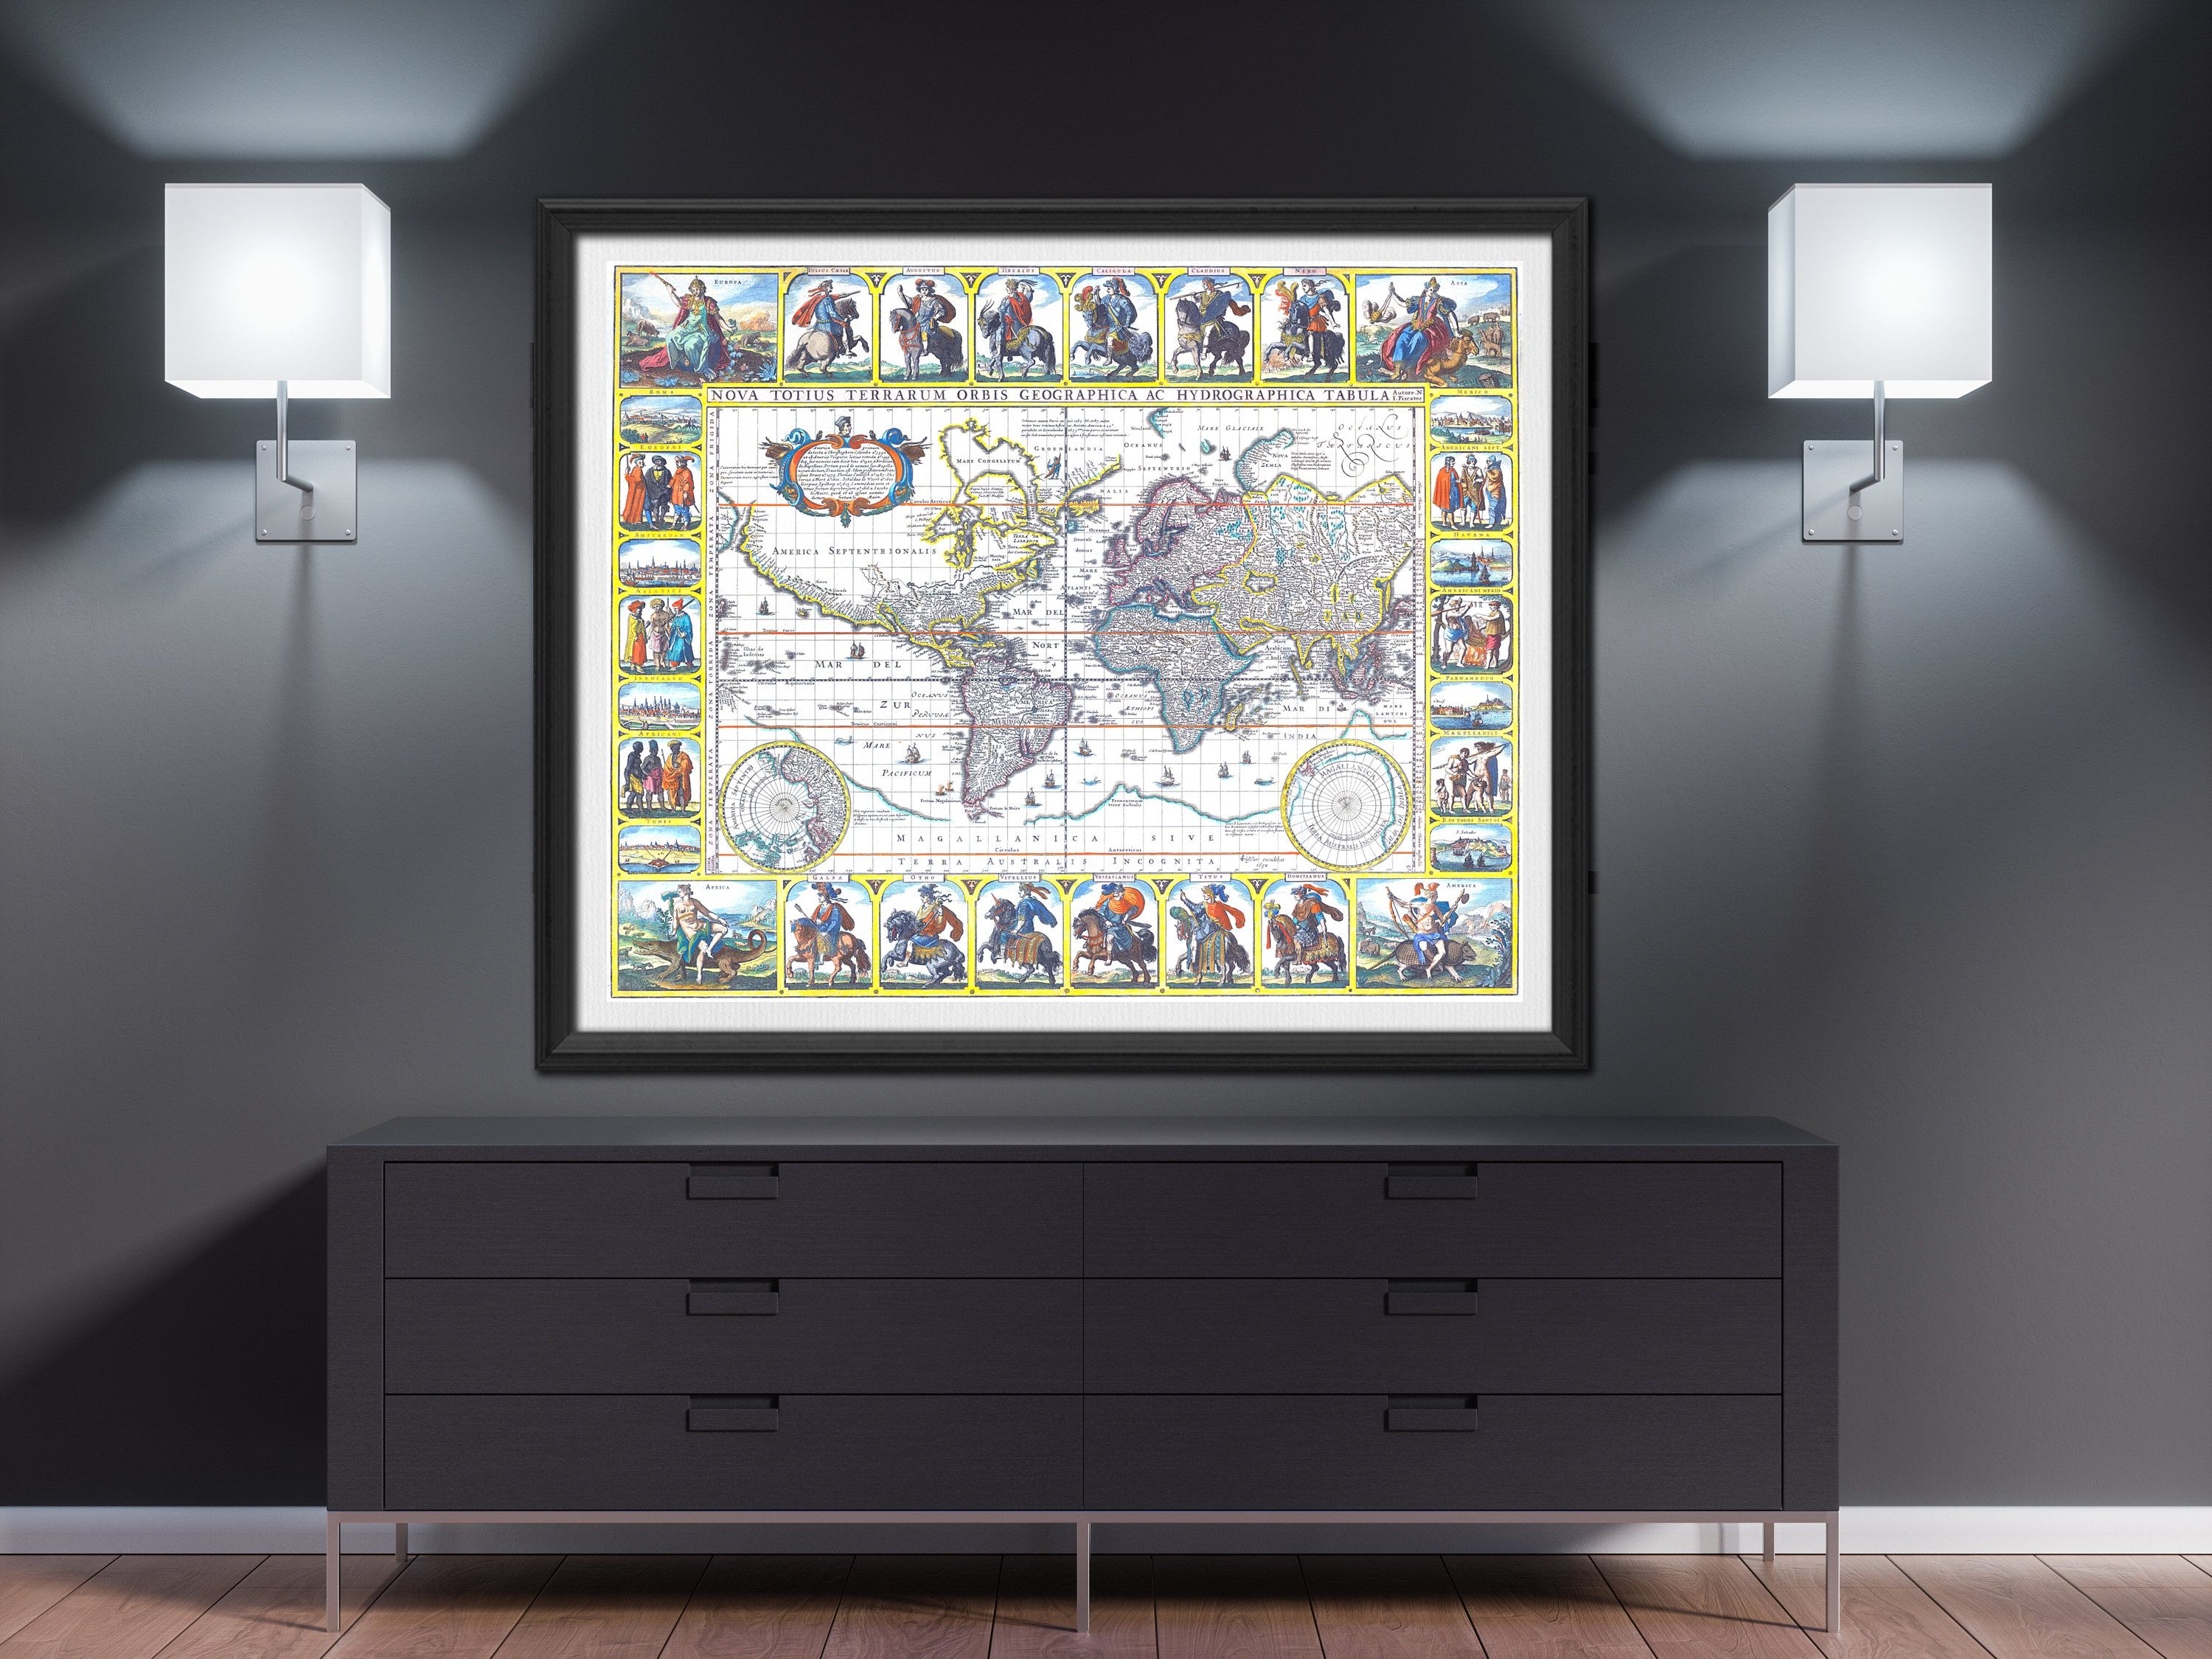 World map print 1652 world map poster world map wall art large world world map print 1652 world map poster world map wall art large world map vintage world map world map room decor push pin worldmap mappemonde gumiabroncs Choice Image